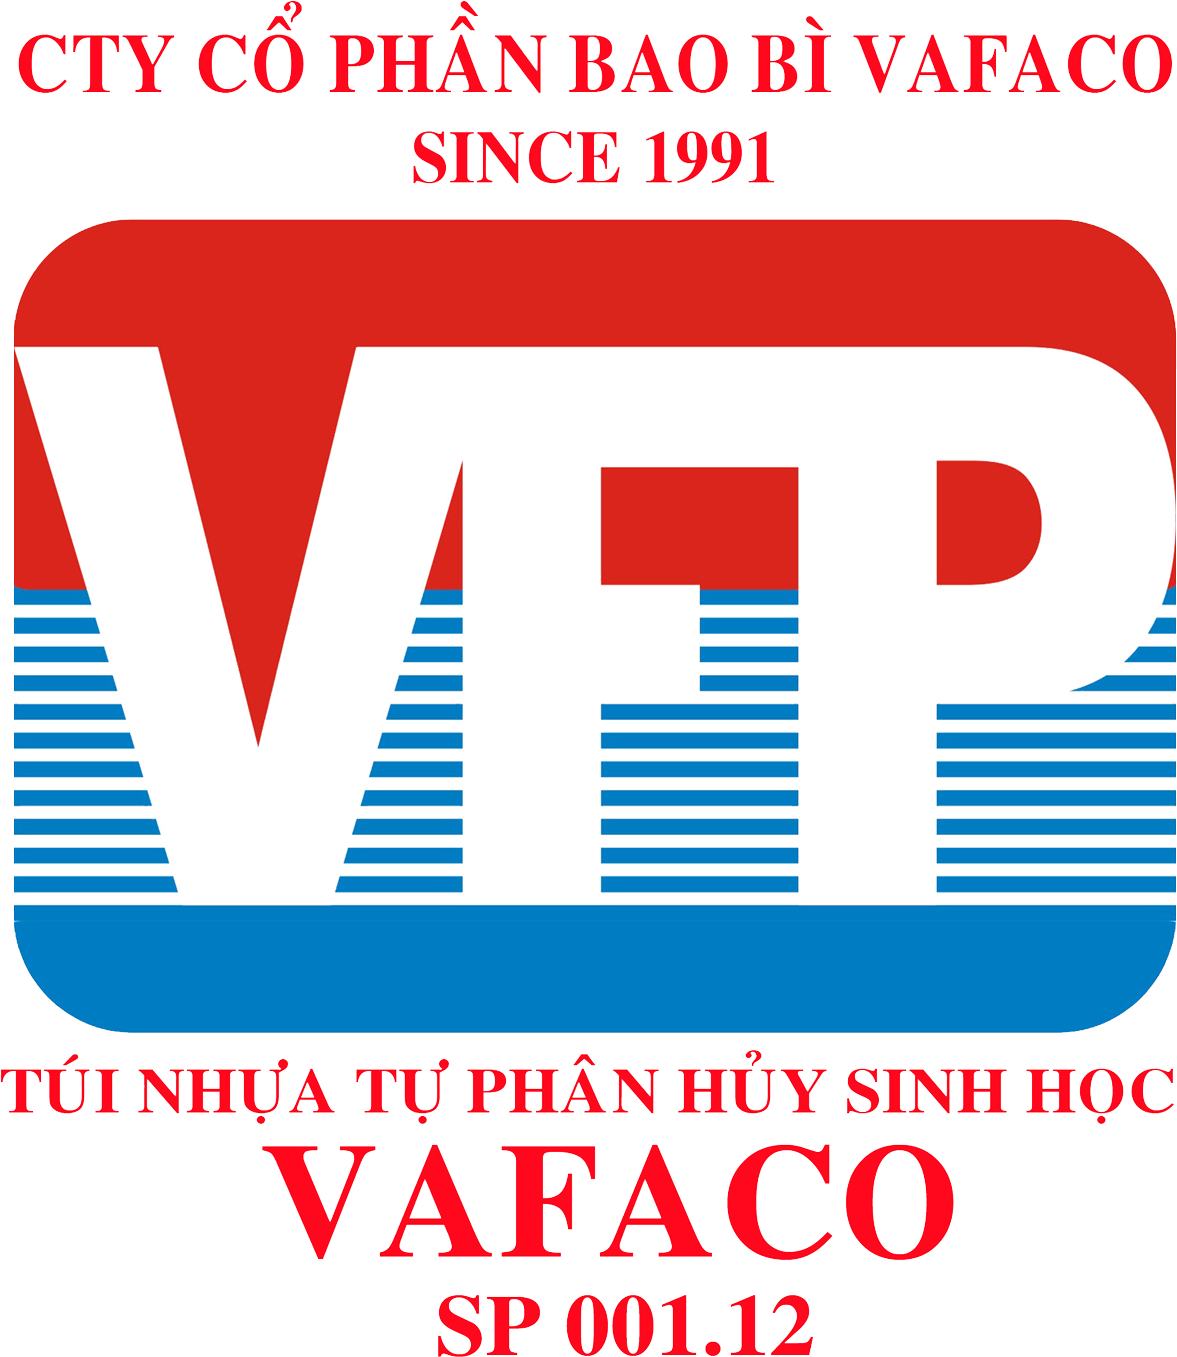 Logo VAFACO Packing Joint Stock Company